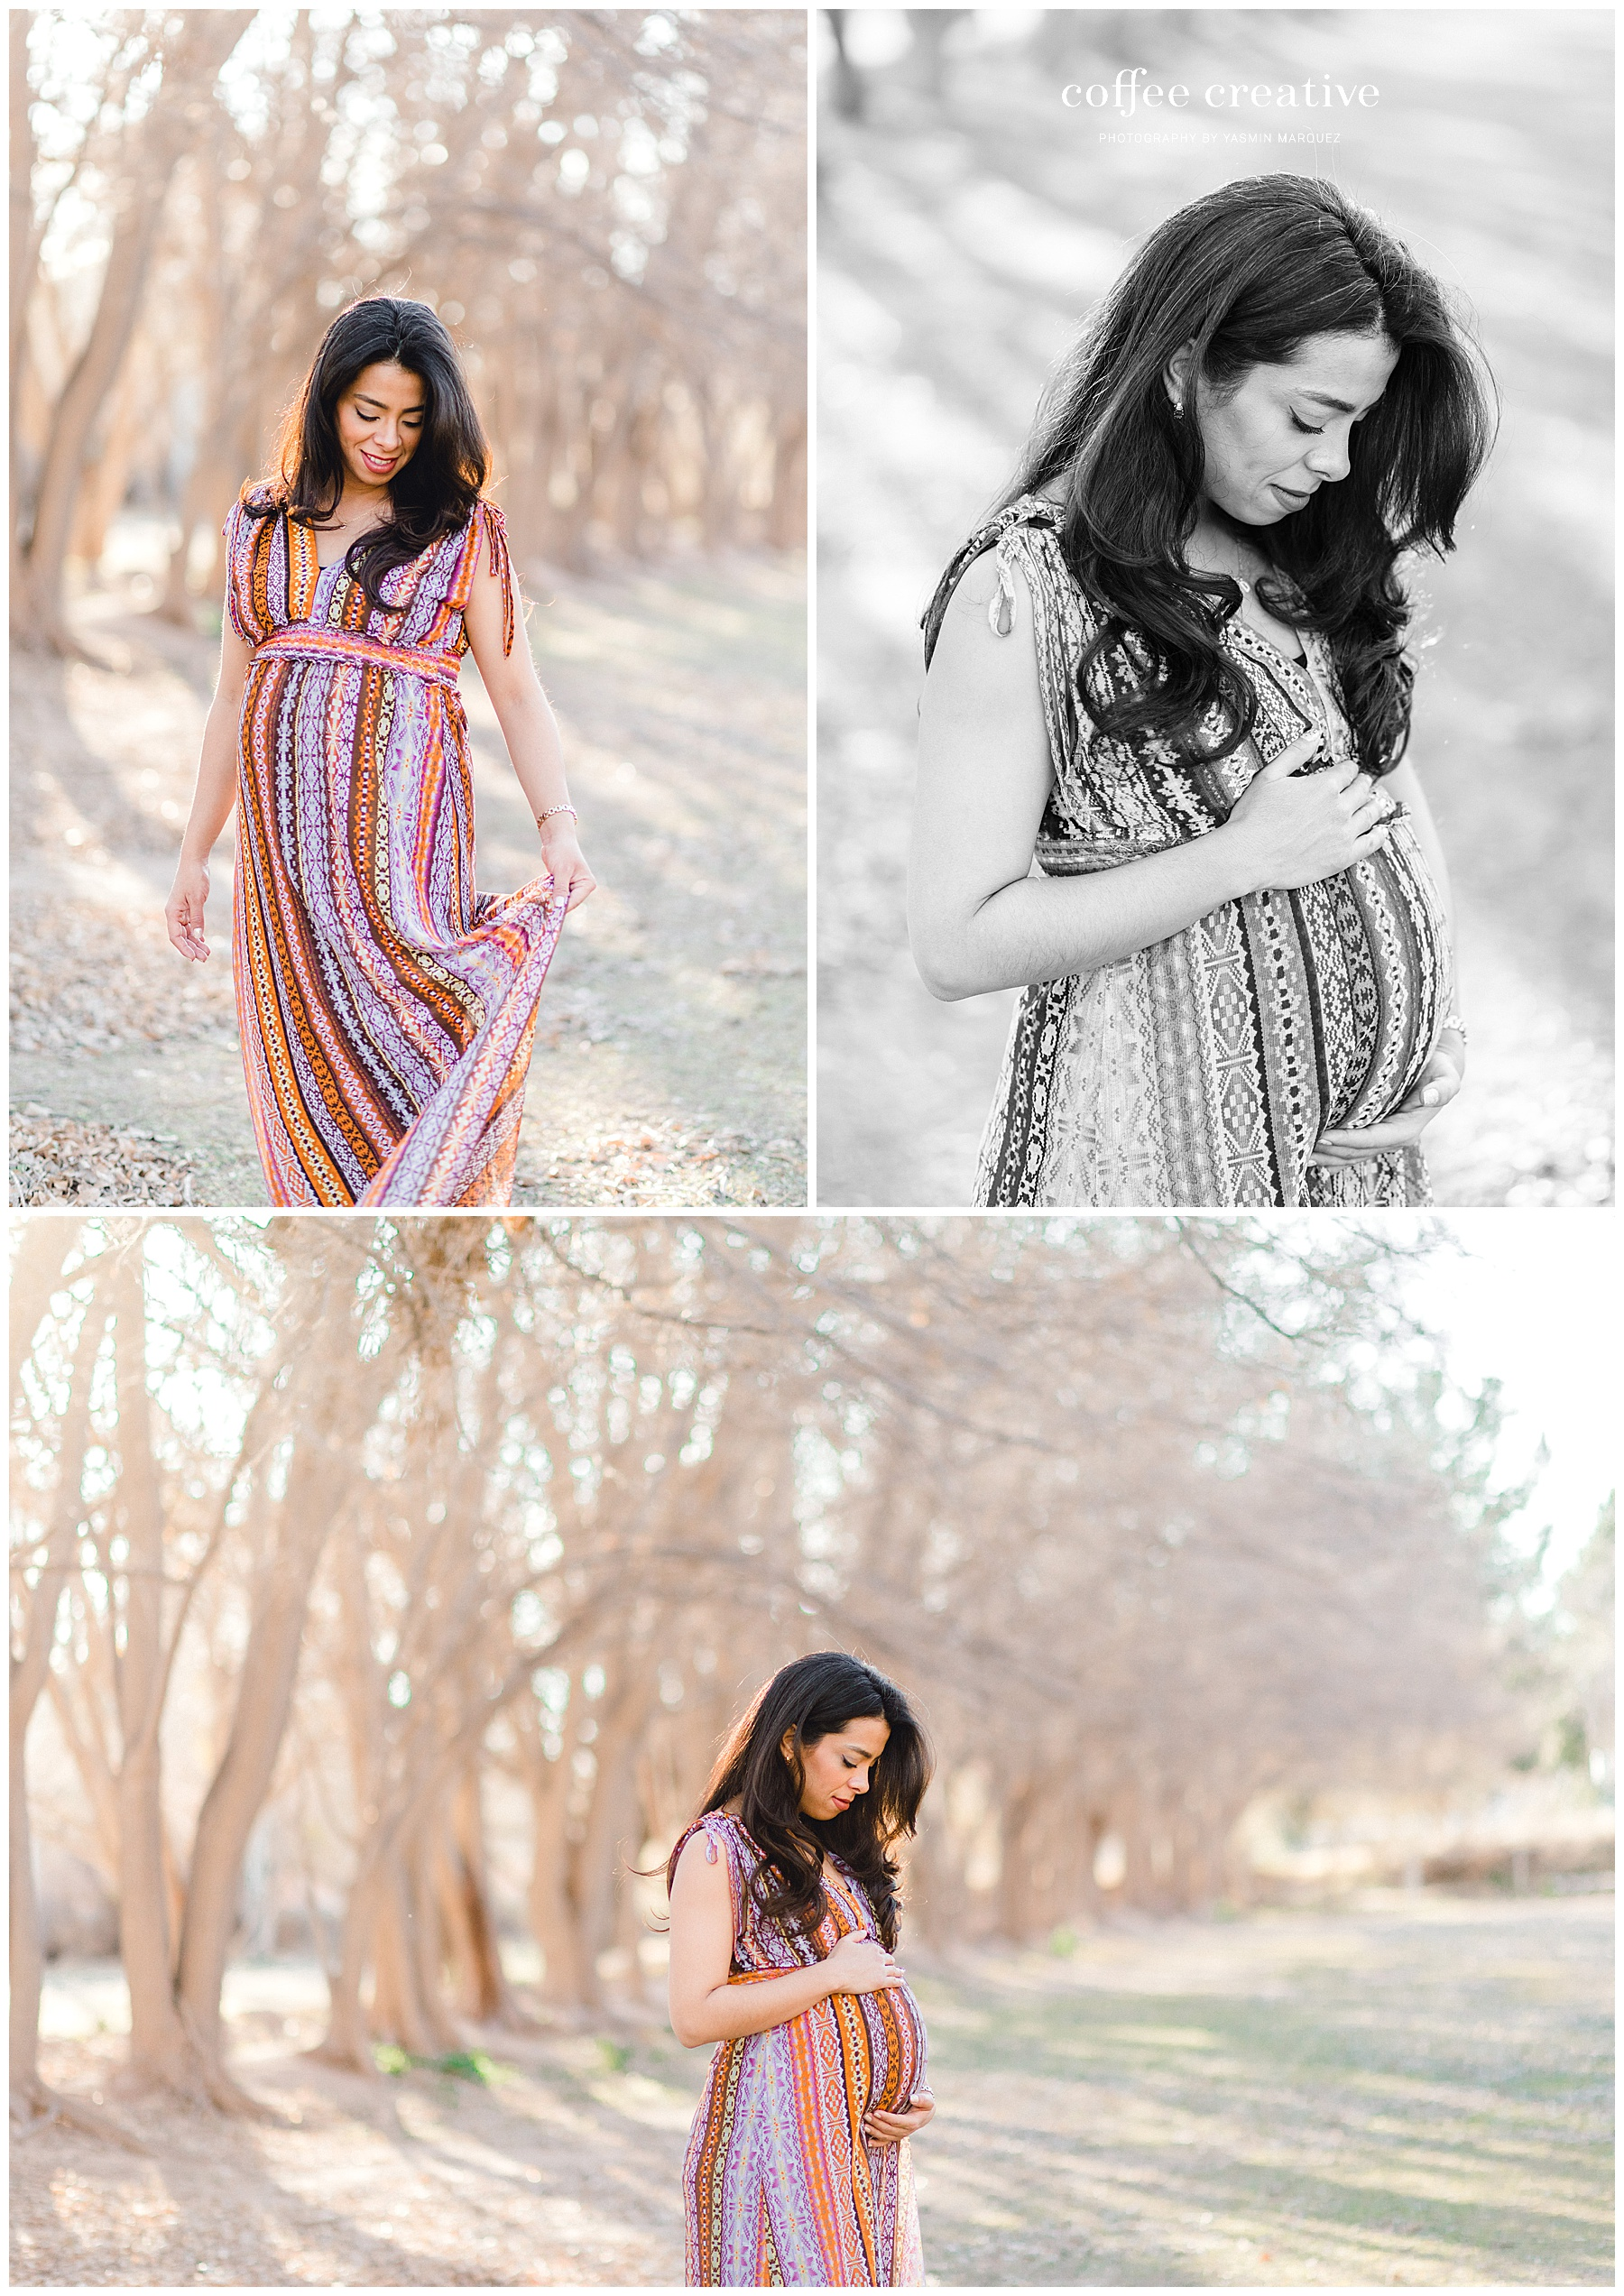 El Paso photography, Fort bliss photographer, el paso family photographer, El Paso Texas Maternity Photographer, Outdoor Rustic Spring Maternity Session, El Paso Texas Maternity Photography,